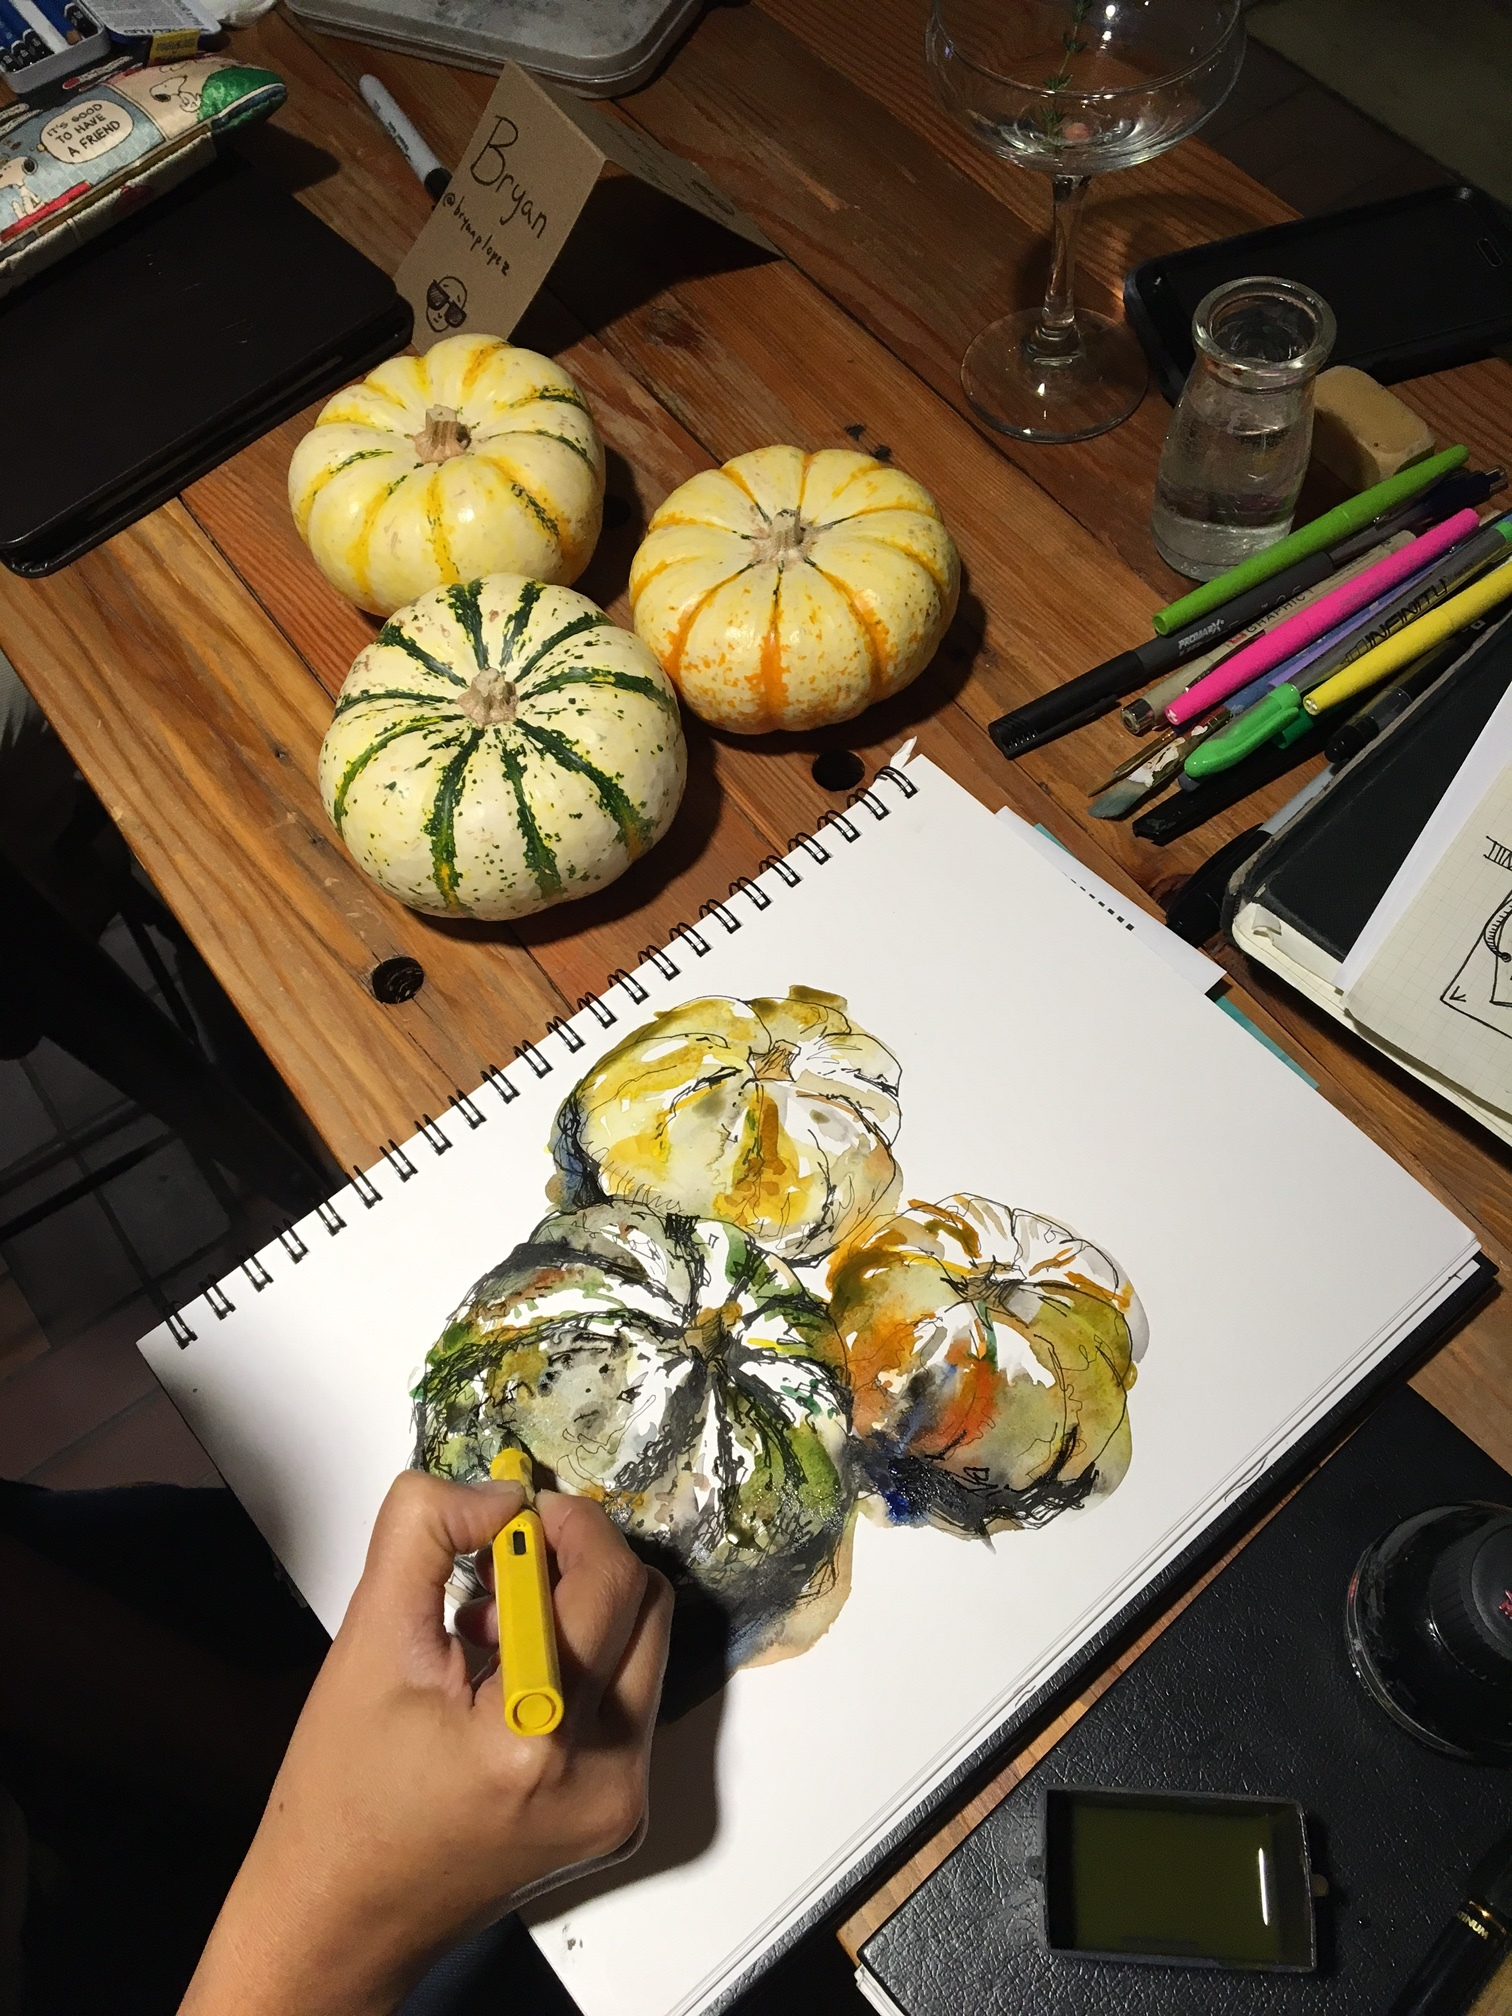 Suhita Shirodkar 's pumpkins. Her sketches are always so loose, yet representative.